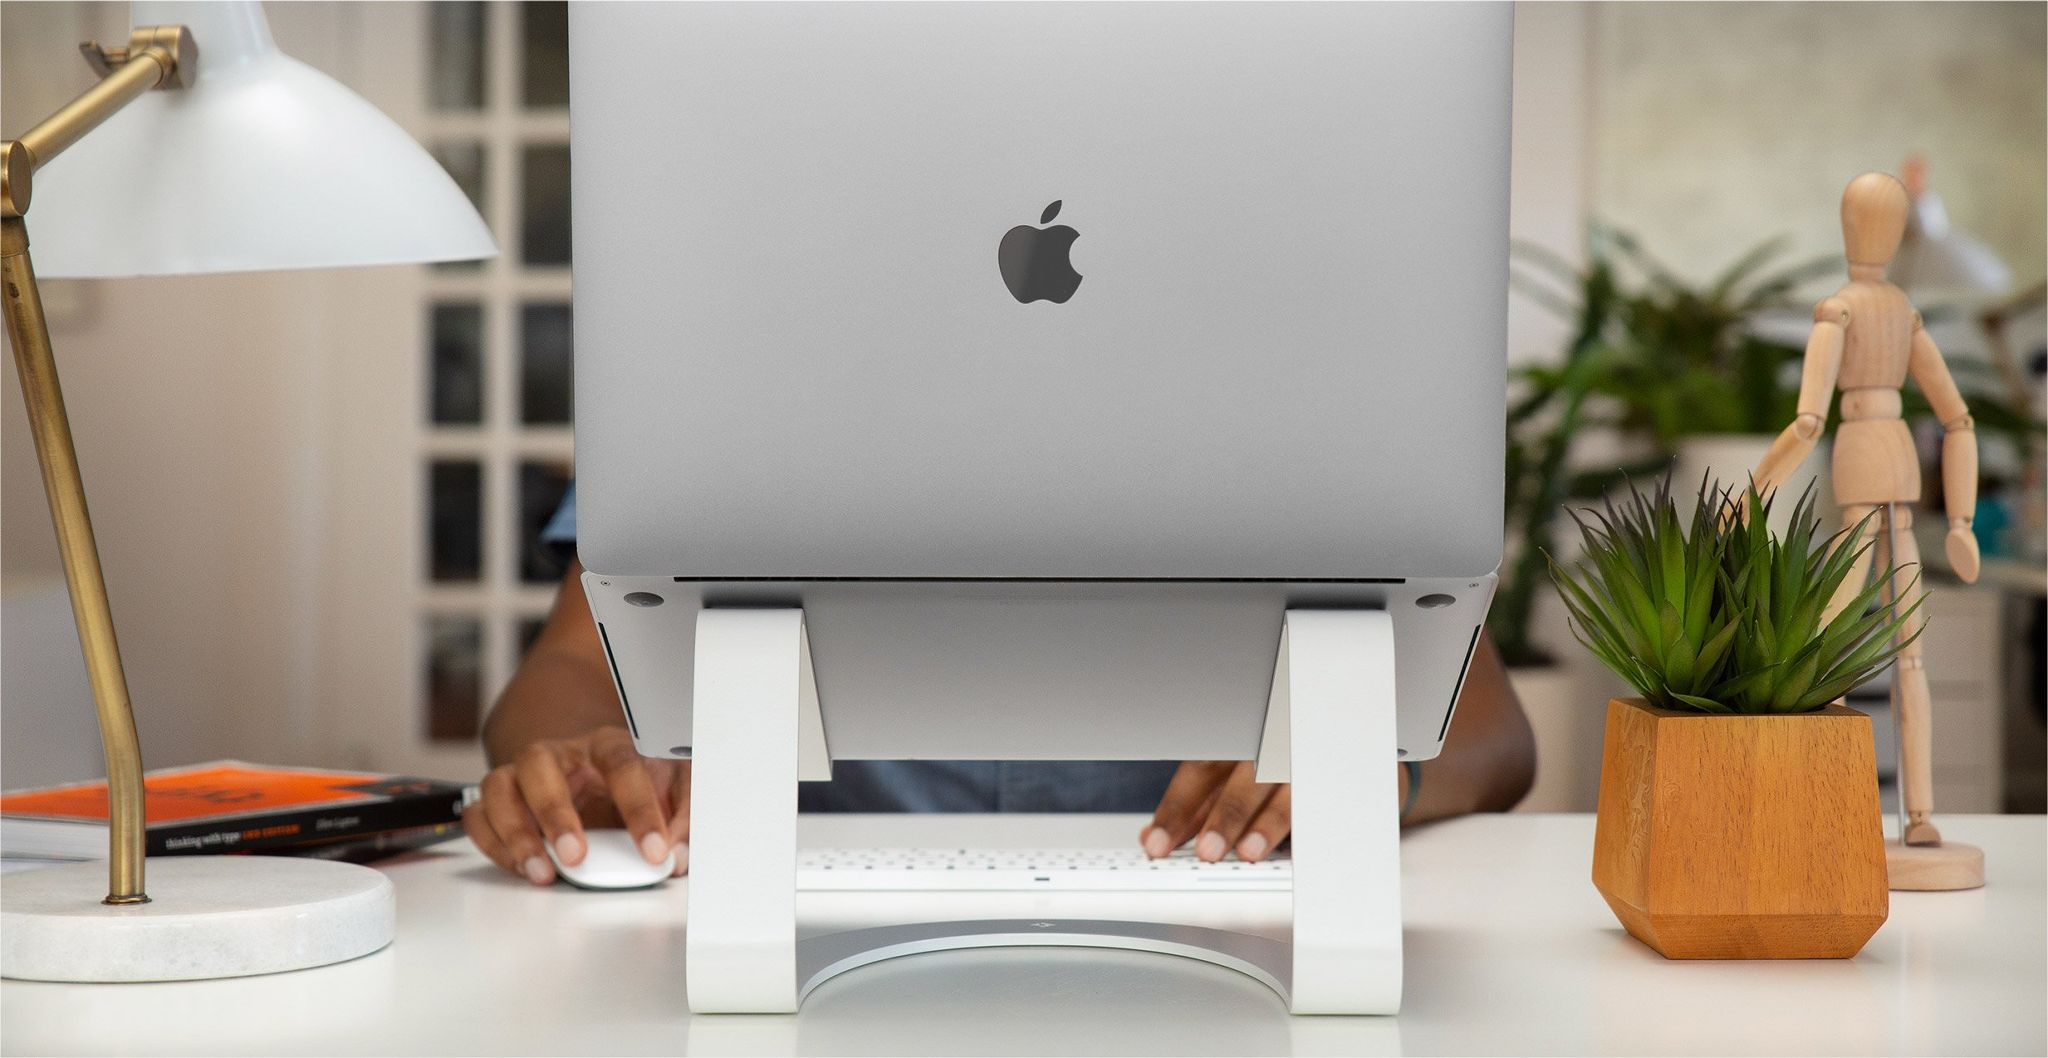 Coolest office gadgets to buy